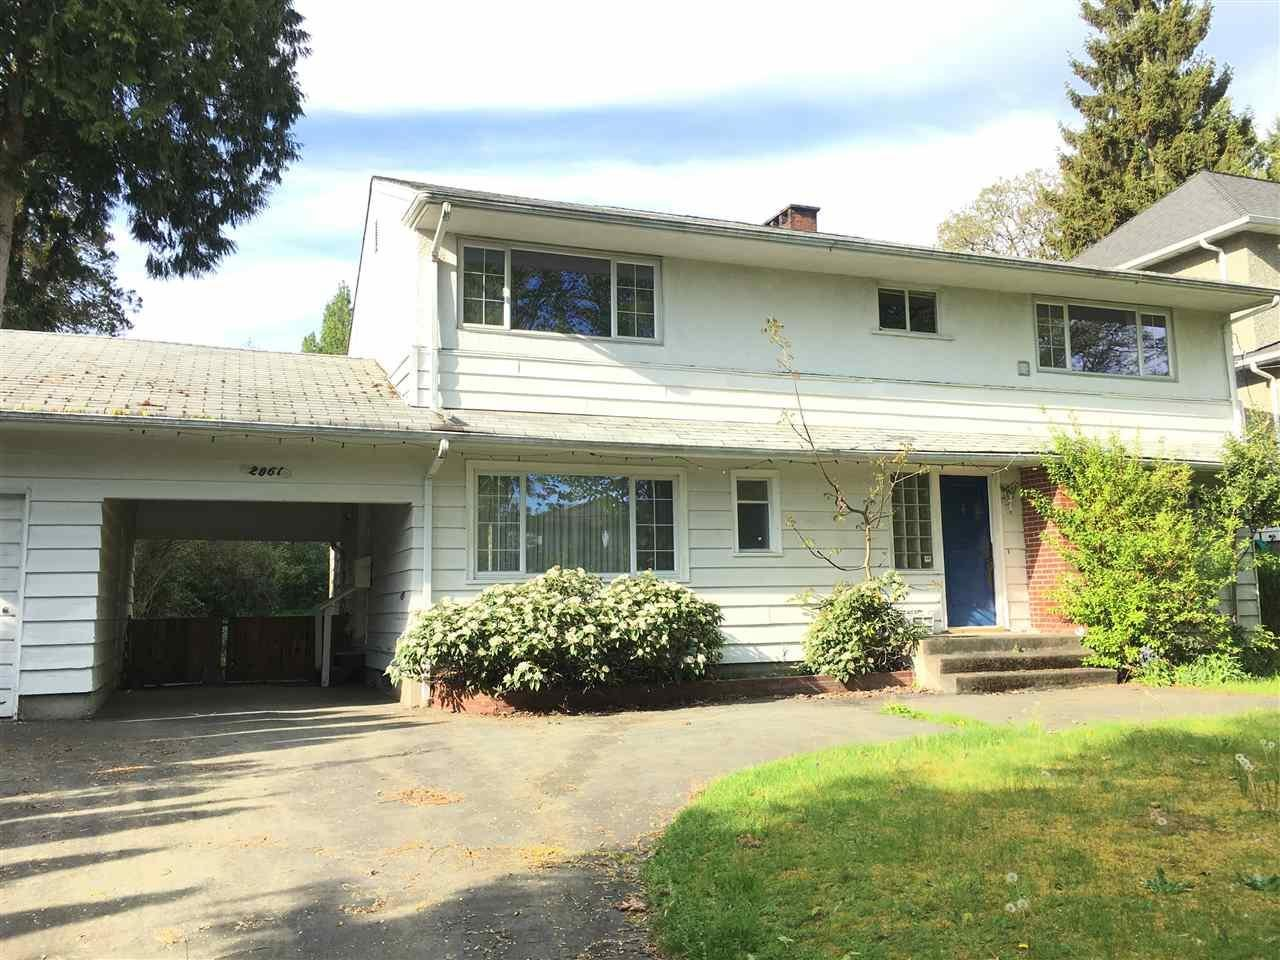 R2059839 - 2061 W 53RD AVENUE, S.W. Marine, Vancouver, BC - House/Single Family